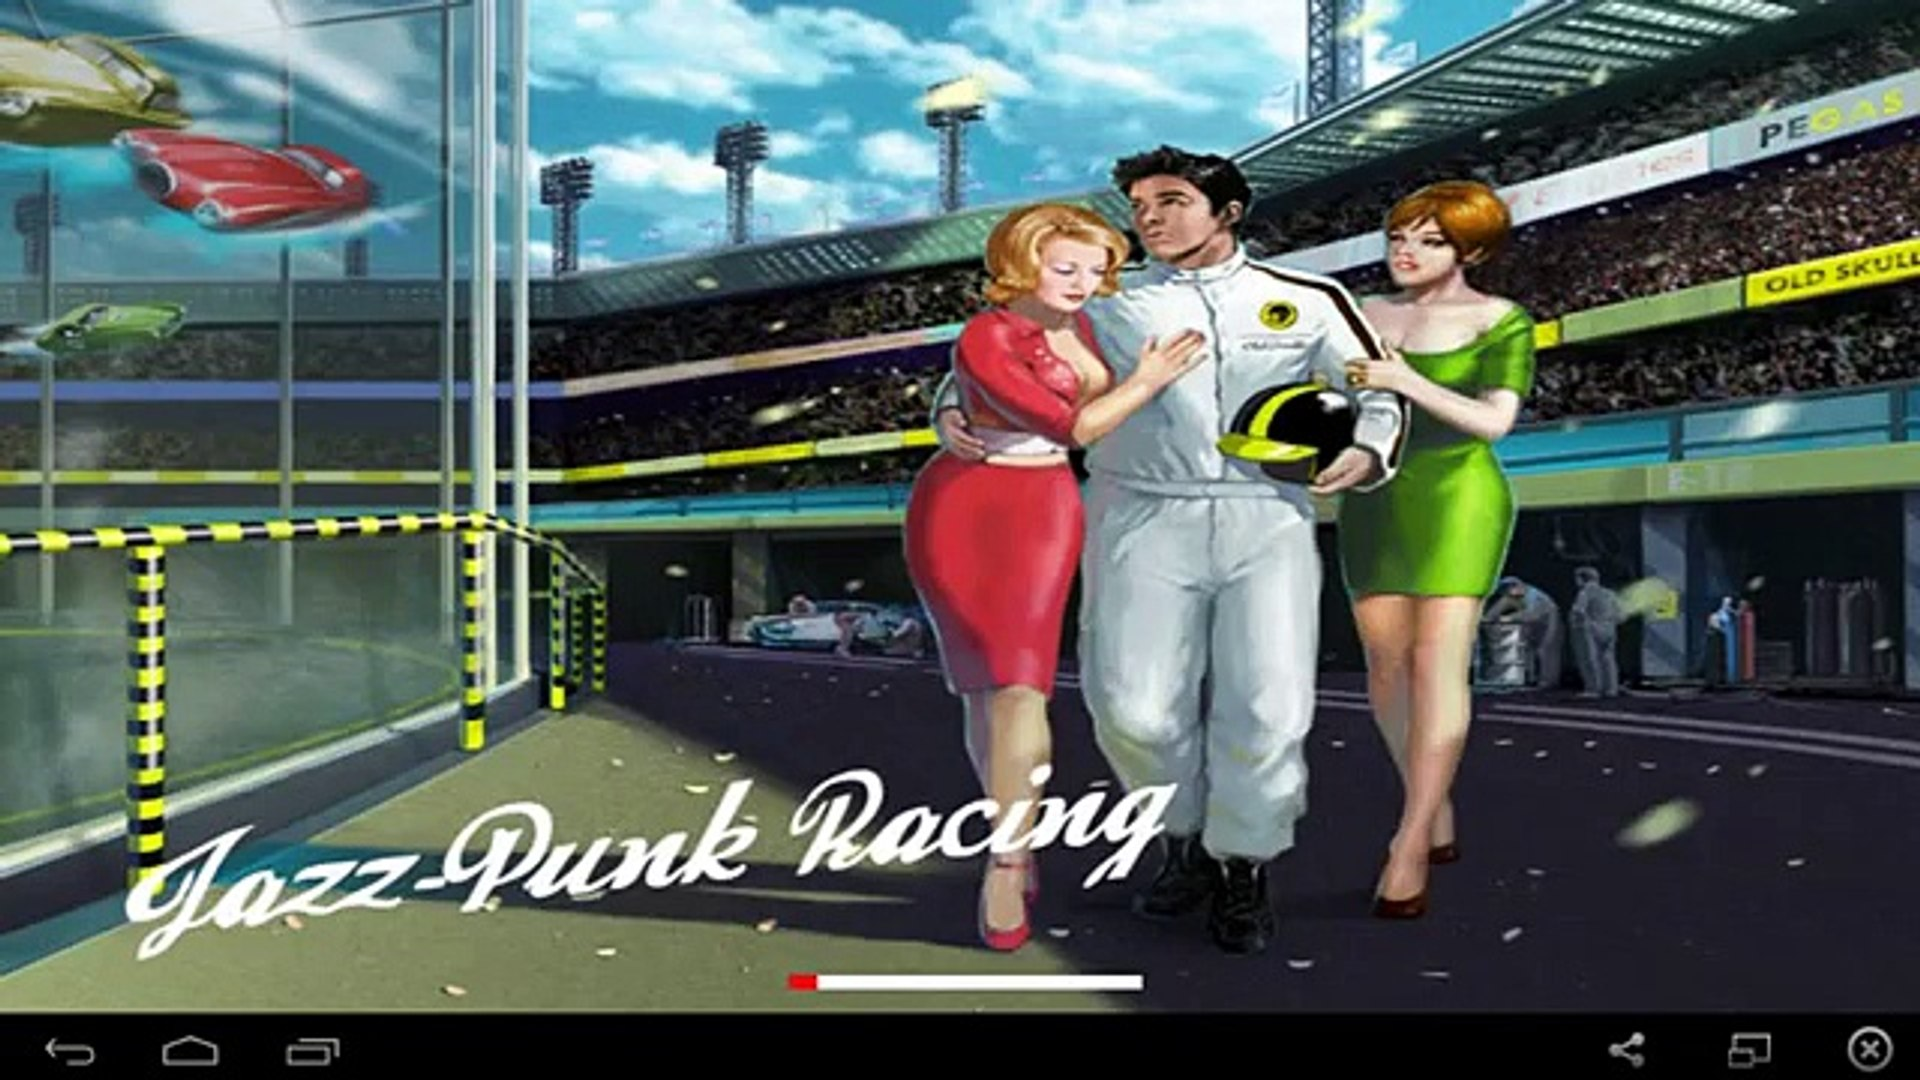 Jazz Punk Racing - for Android GamePlay